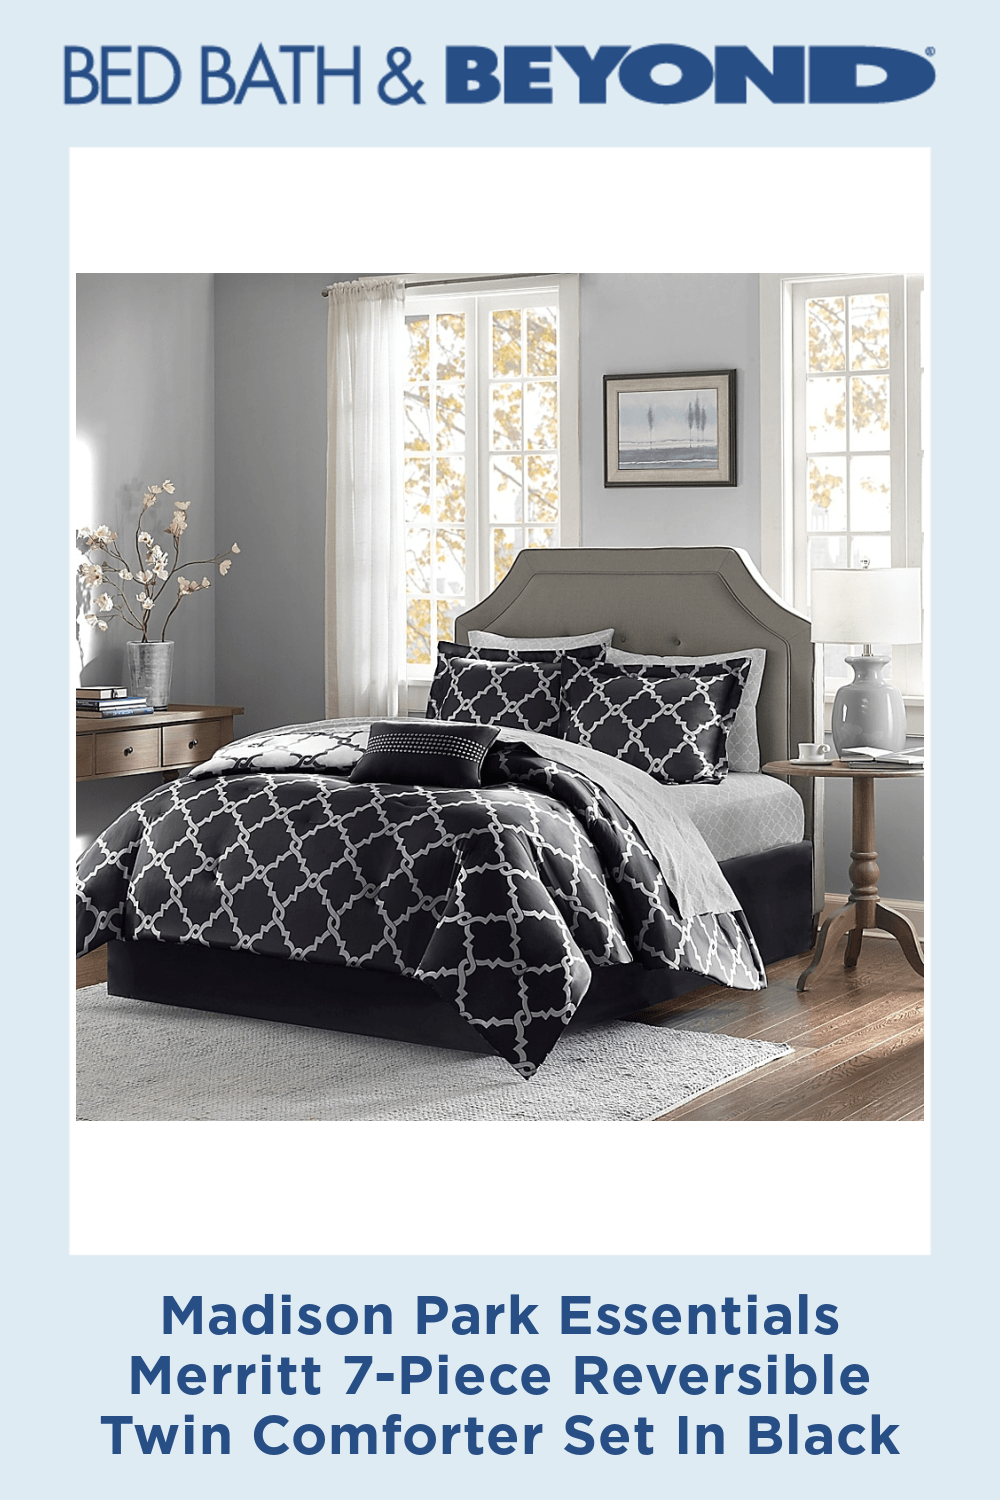 Photo of Madison Park Essentials Merritt 7-Piece Reversible Twin Comforter Set In Black